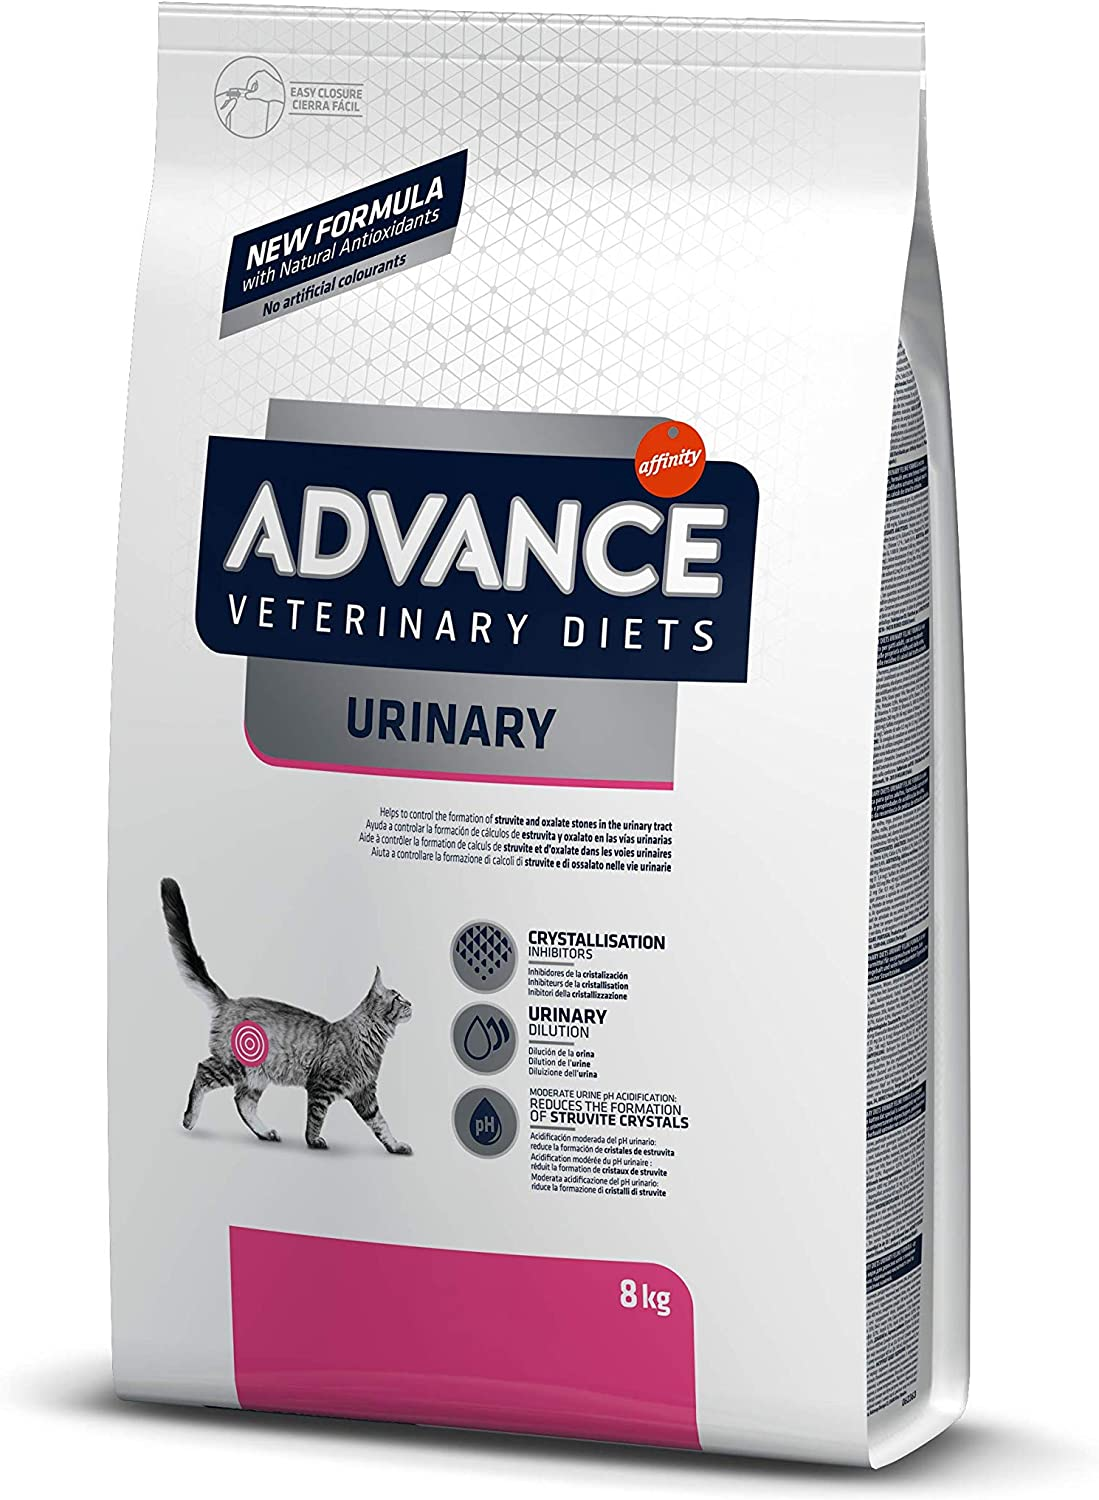 ADVANCE Veterinary Diets Urinary Pienso para Gatos con Problemas Urinarios - 8kg